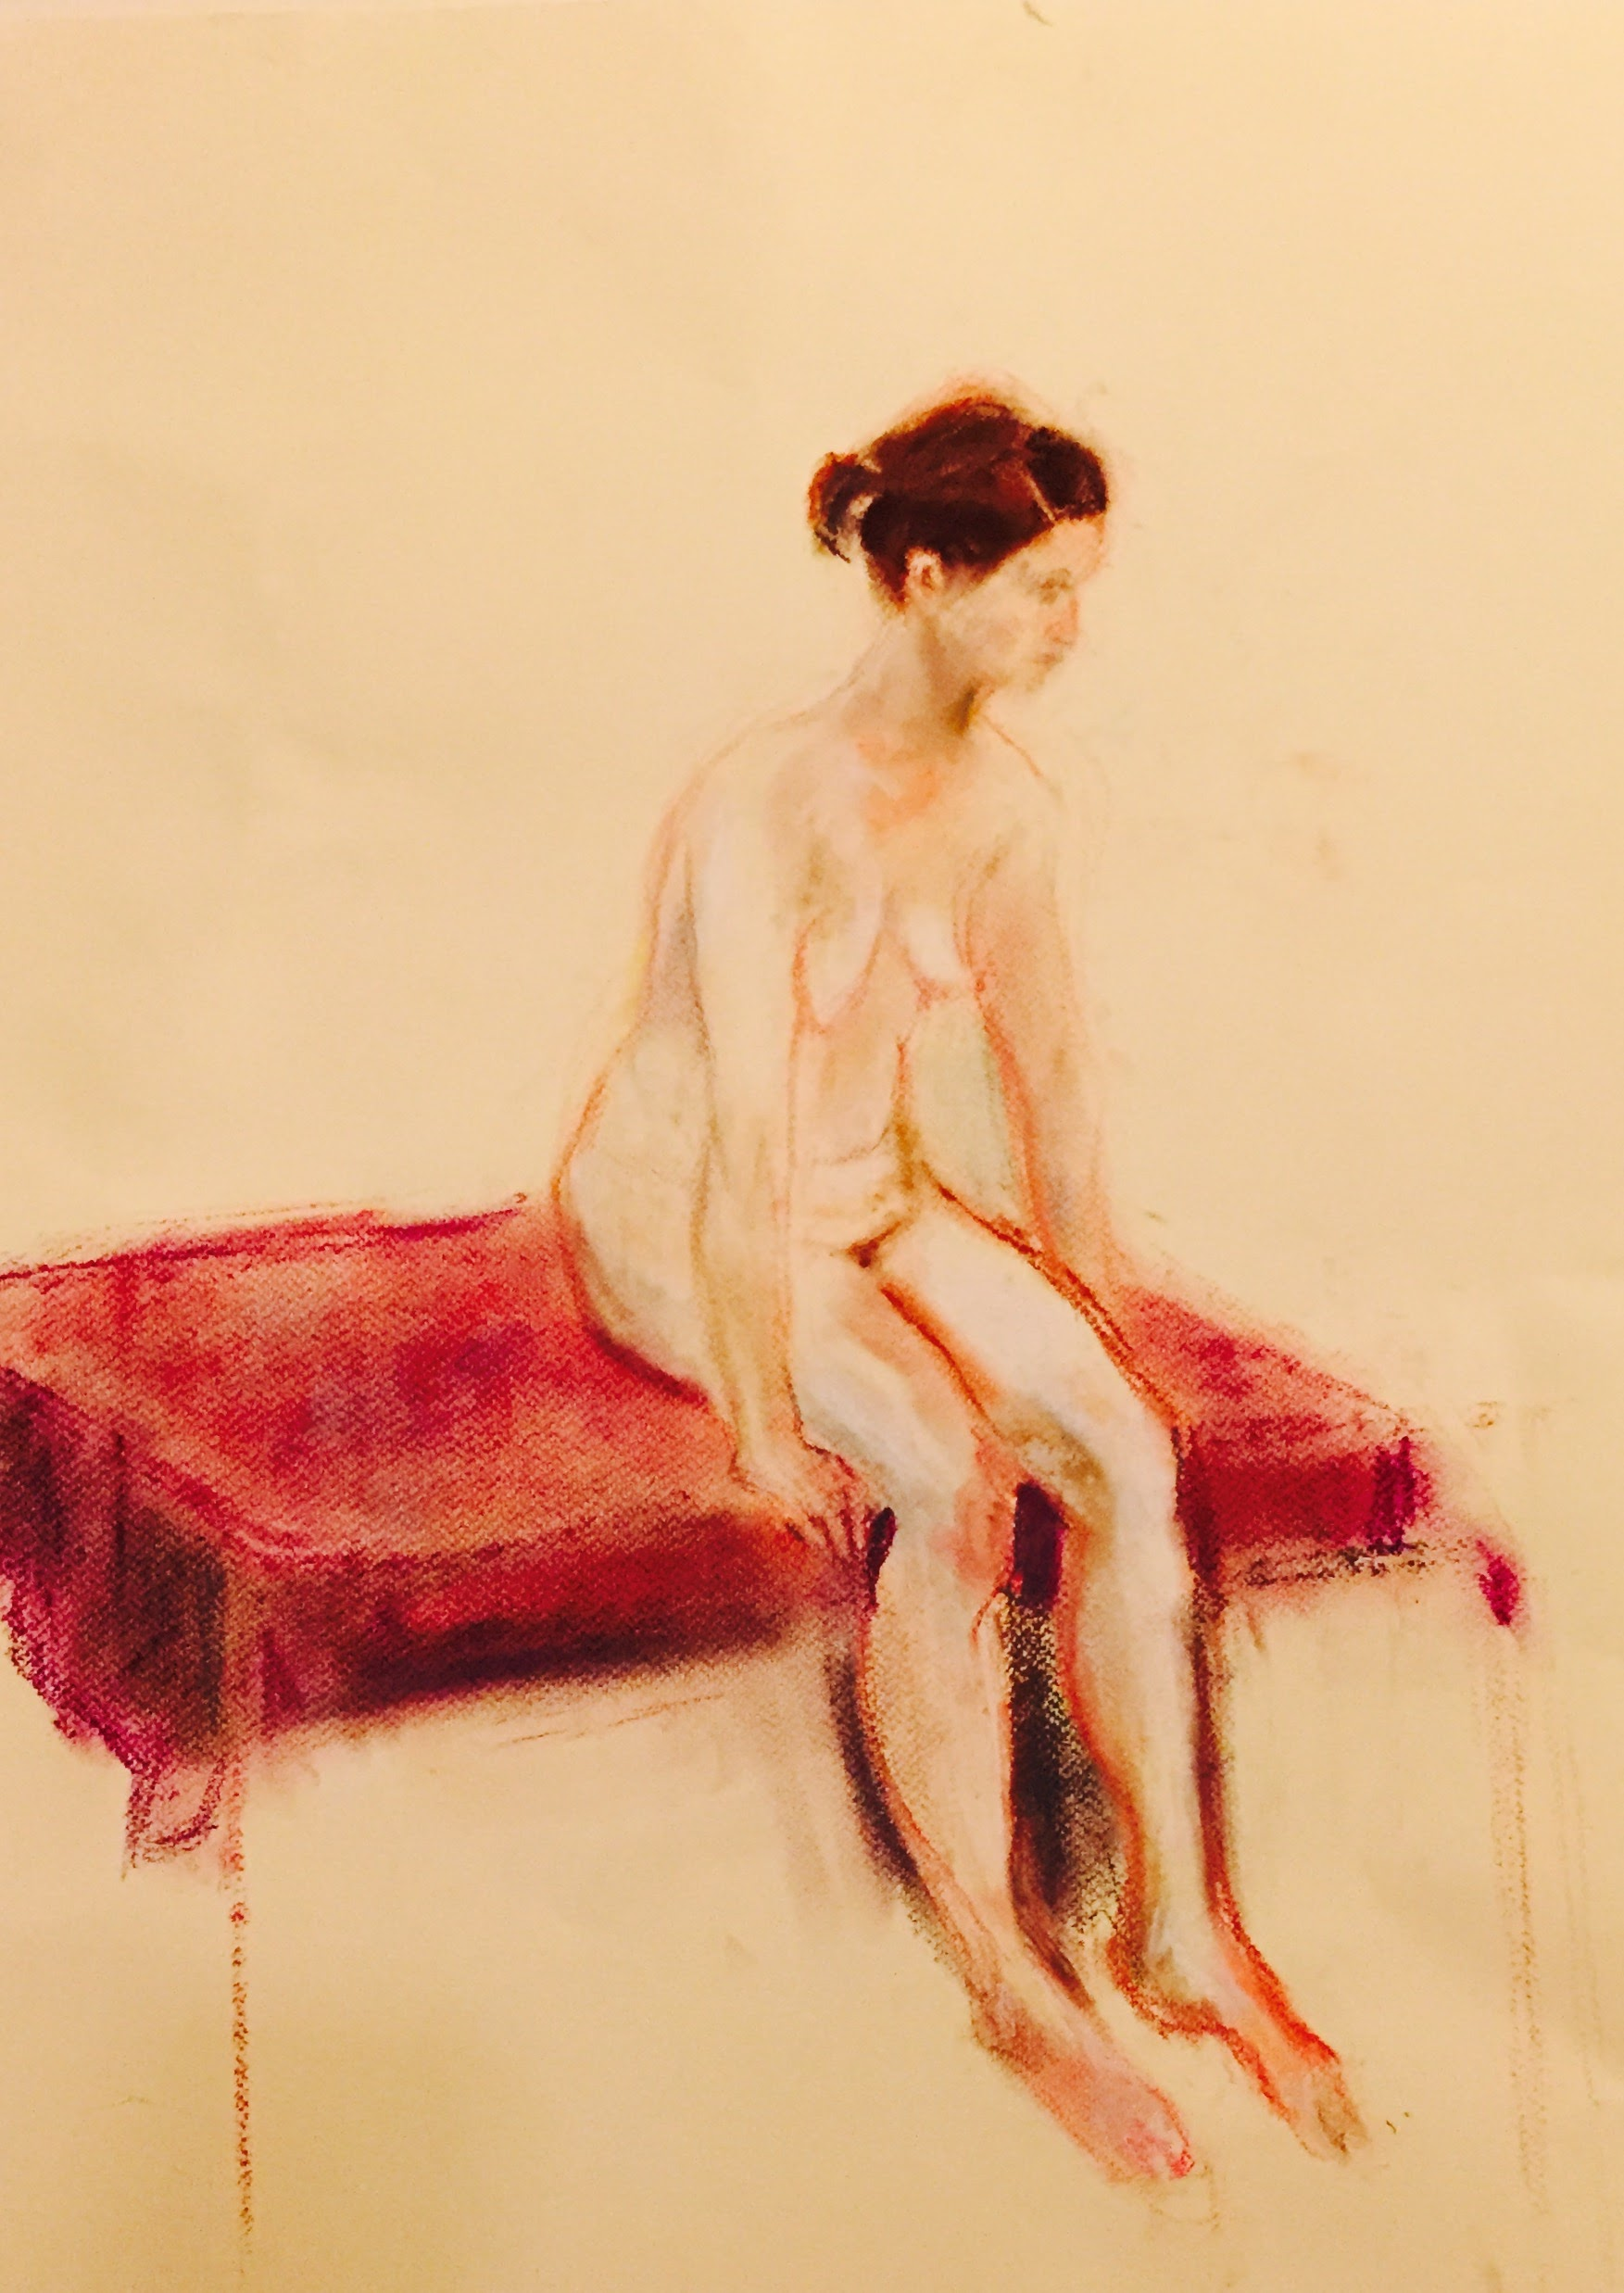 Waiting     Unison pastels on paper  by Sally Hyman